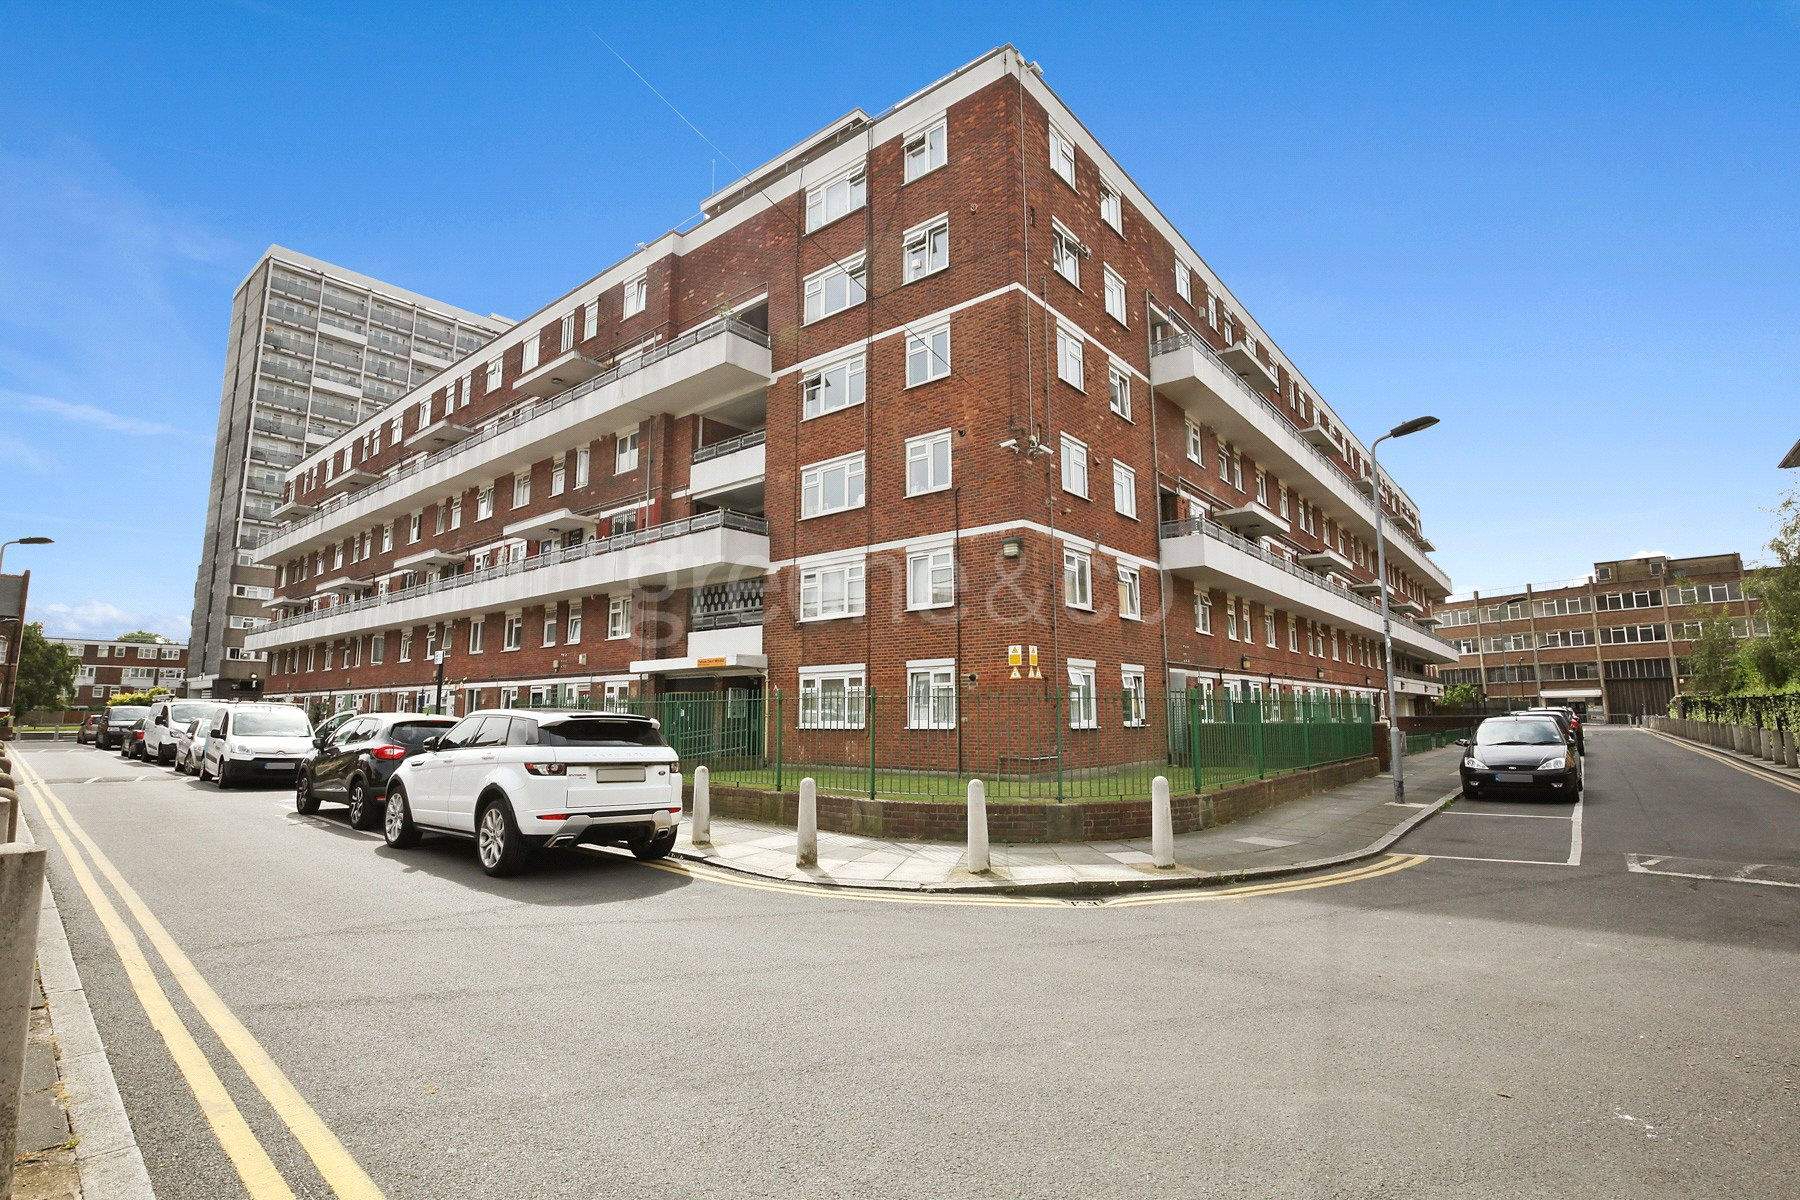 3 Bedrooms House for sale in Fellows Court, Weymouth Terrace, London, E2